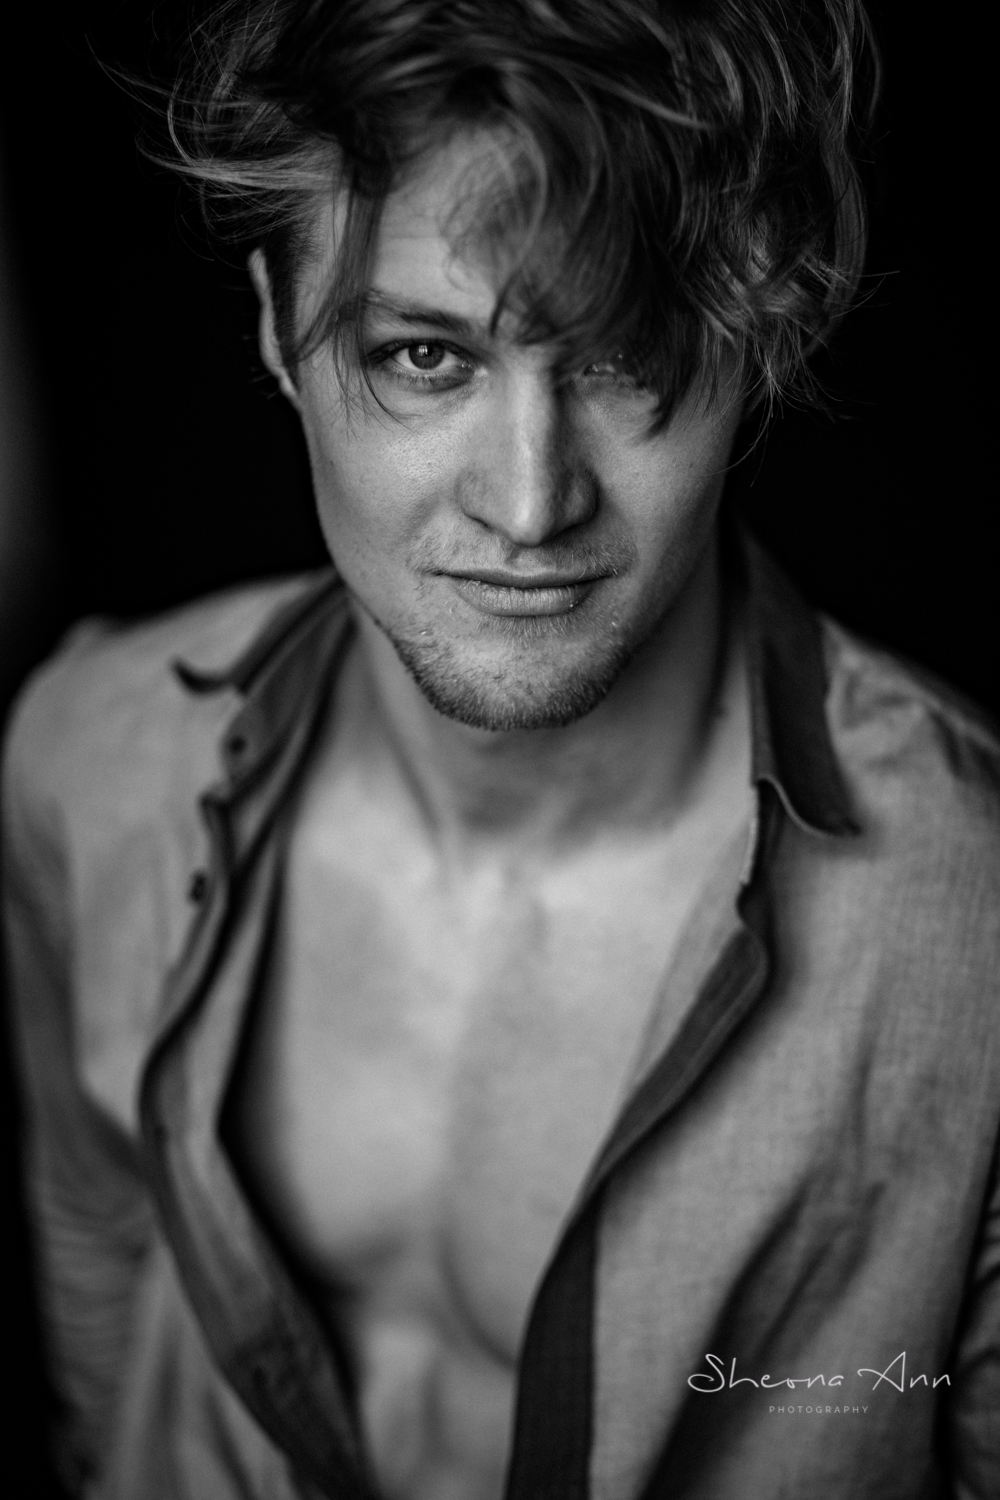 sexy-man-in-shirt-bw-portrait-sheona-ann-photography.jpg